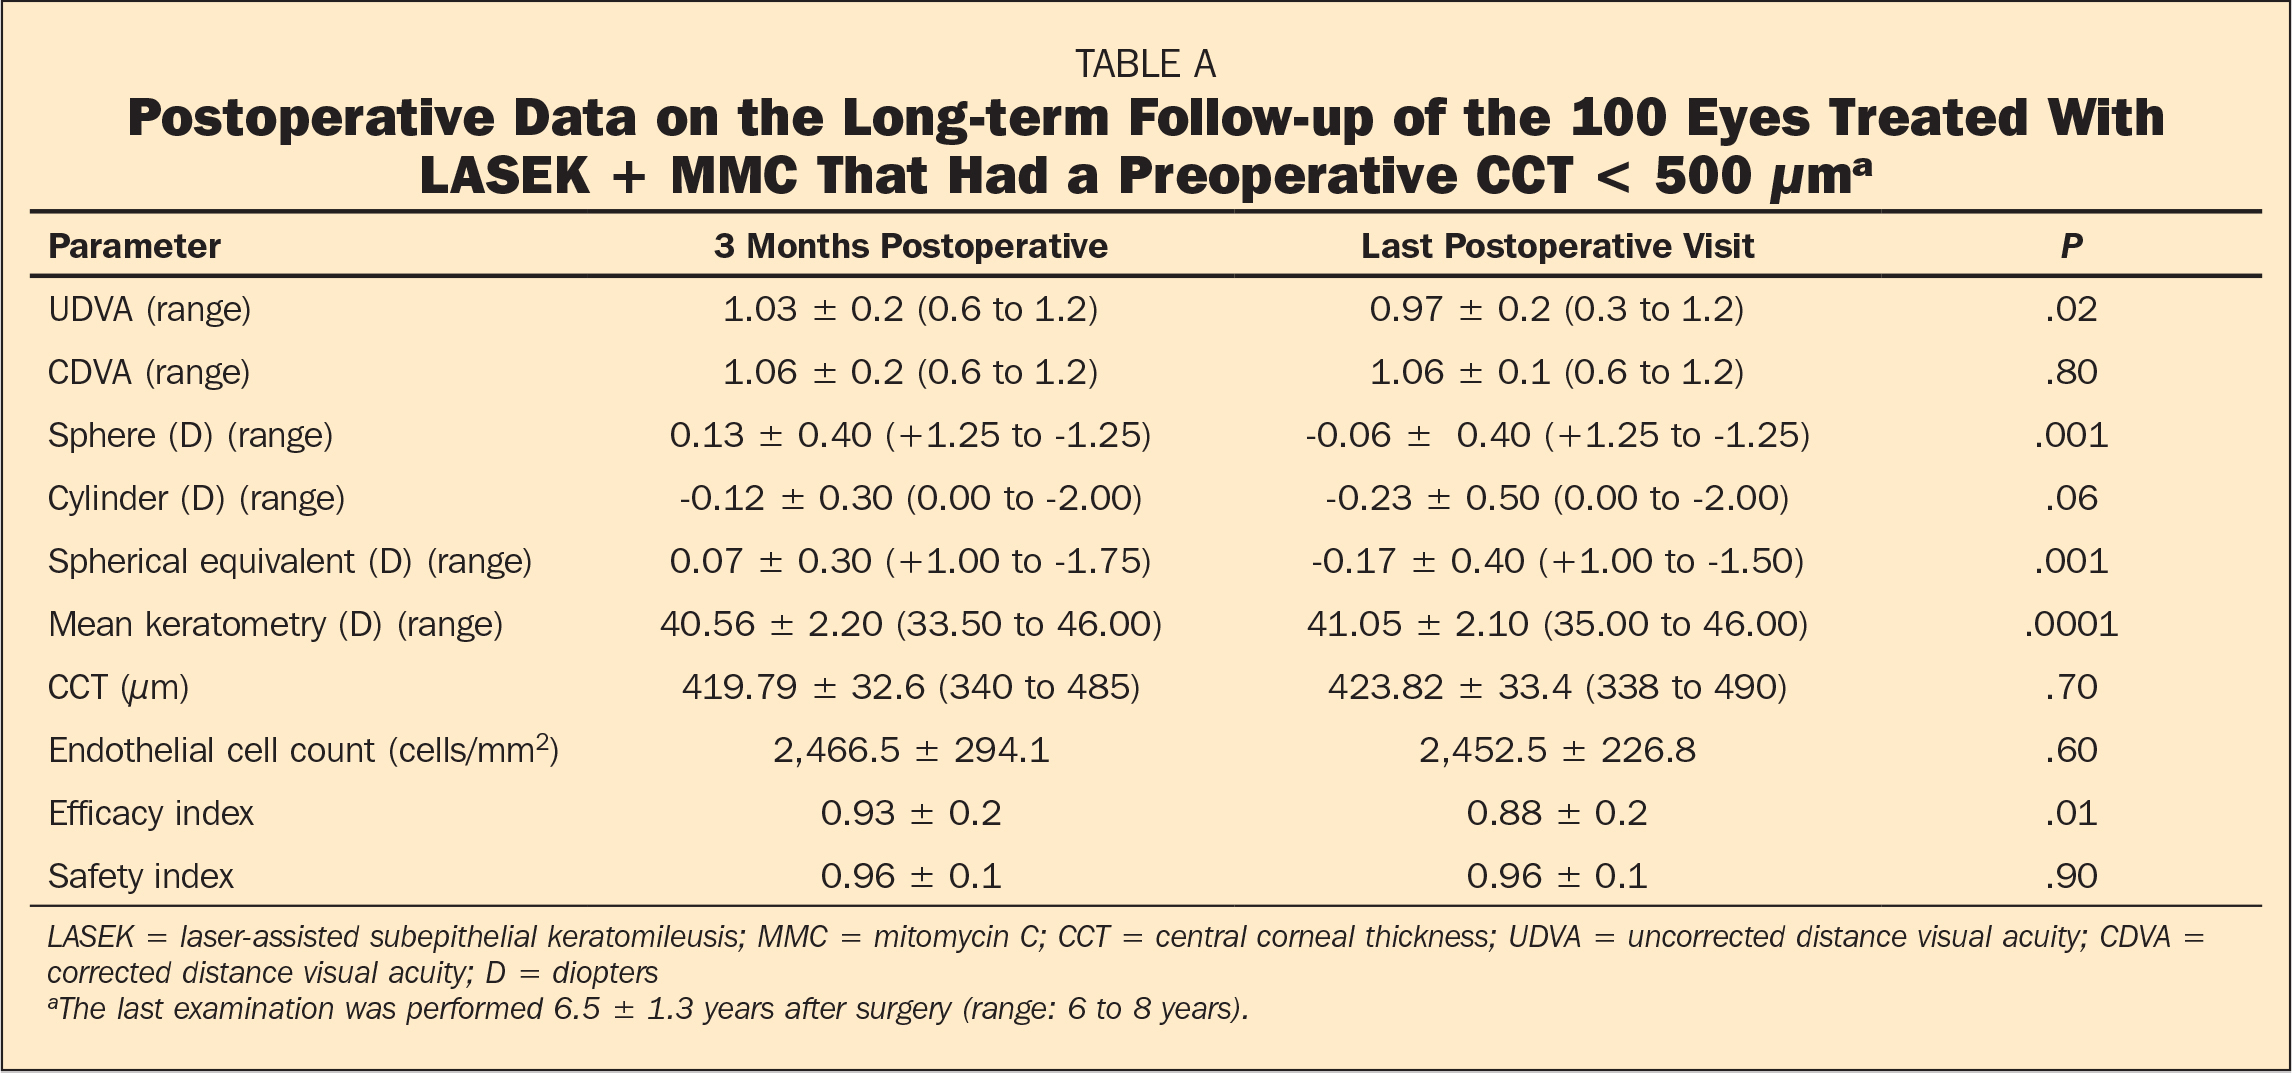 Postoperative Data on the Long-term Follow-up of the 100 Eyes Treated With LASEK + MMC That Had a Preoperative CCT < 500 μma